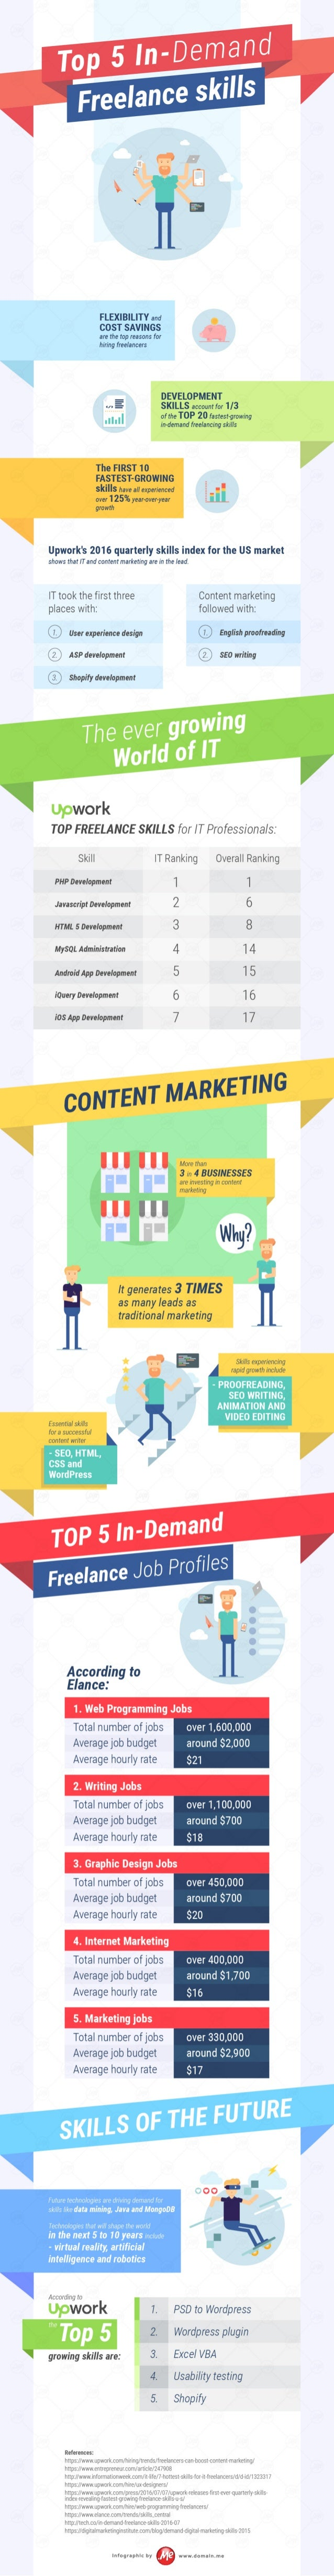 [INFOGRAPHIC] Top In-Demand Freelance Skills